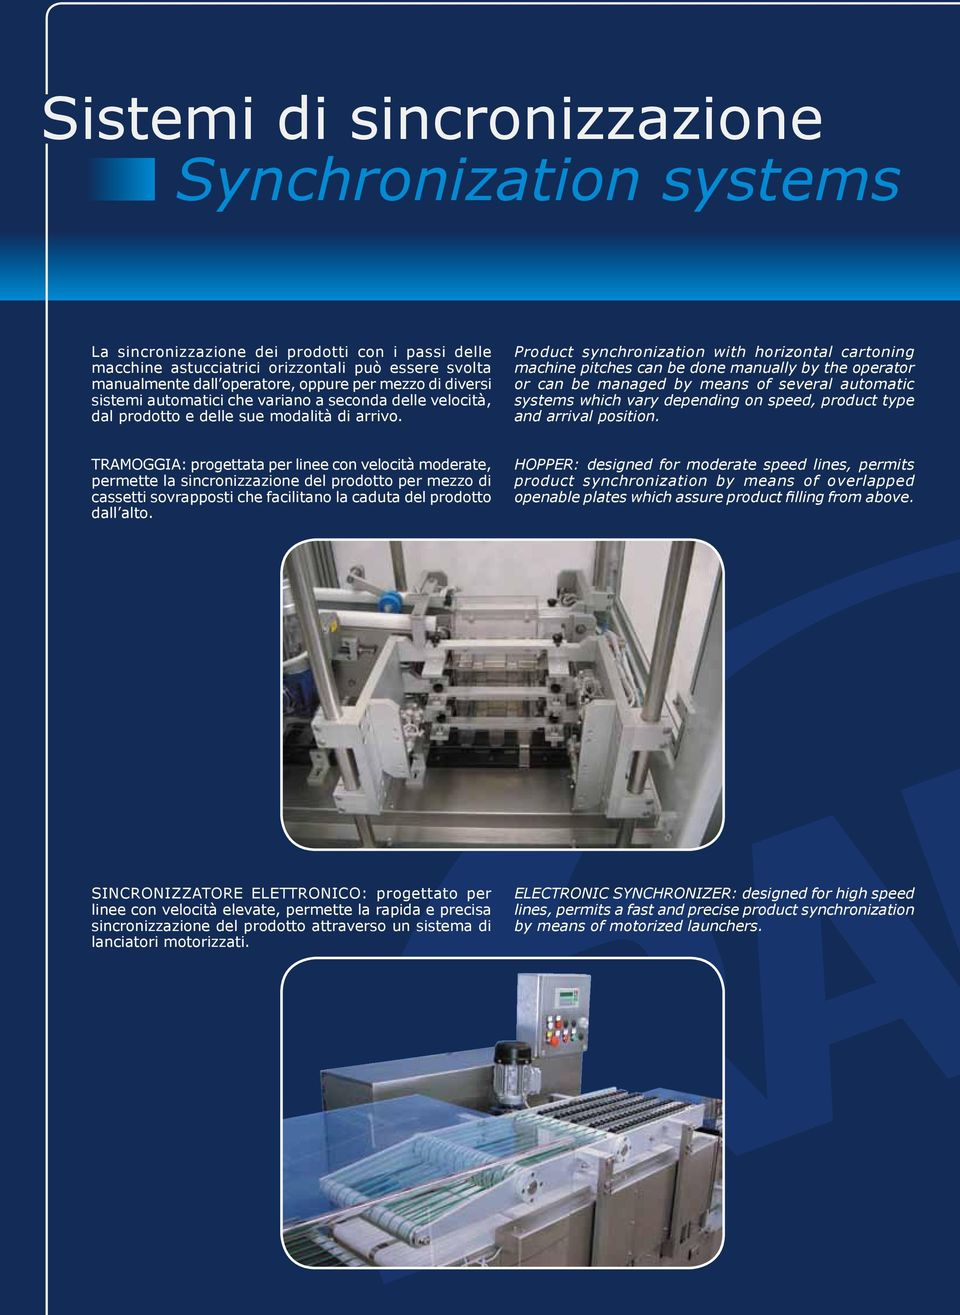 Product synchronization with horizontal cartoning machine pitches can be done manually by the operator or can be managed by means of several automatic systems which vary depending on speed, product